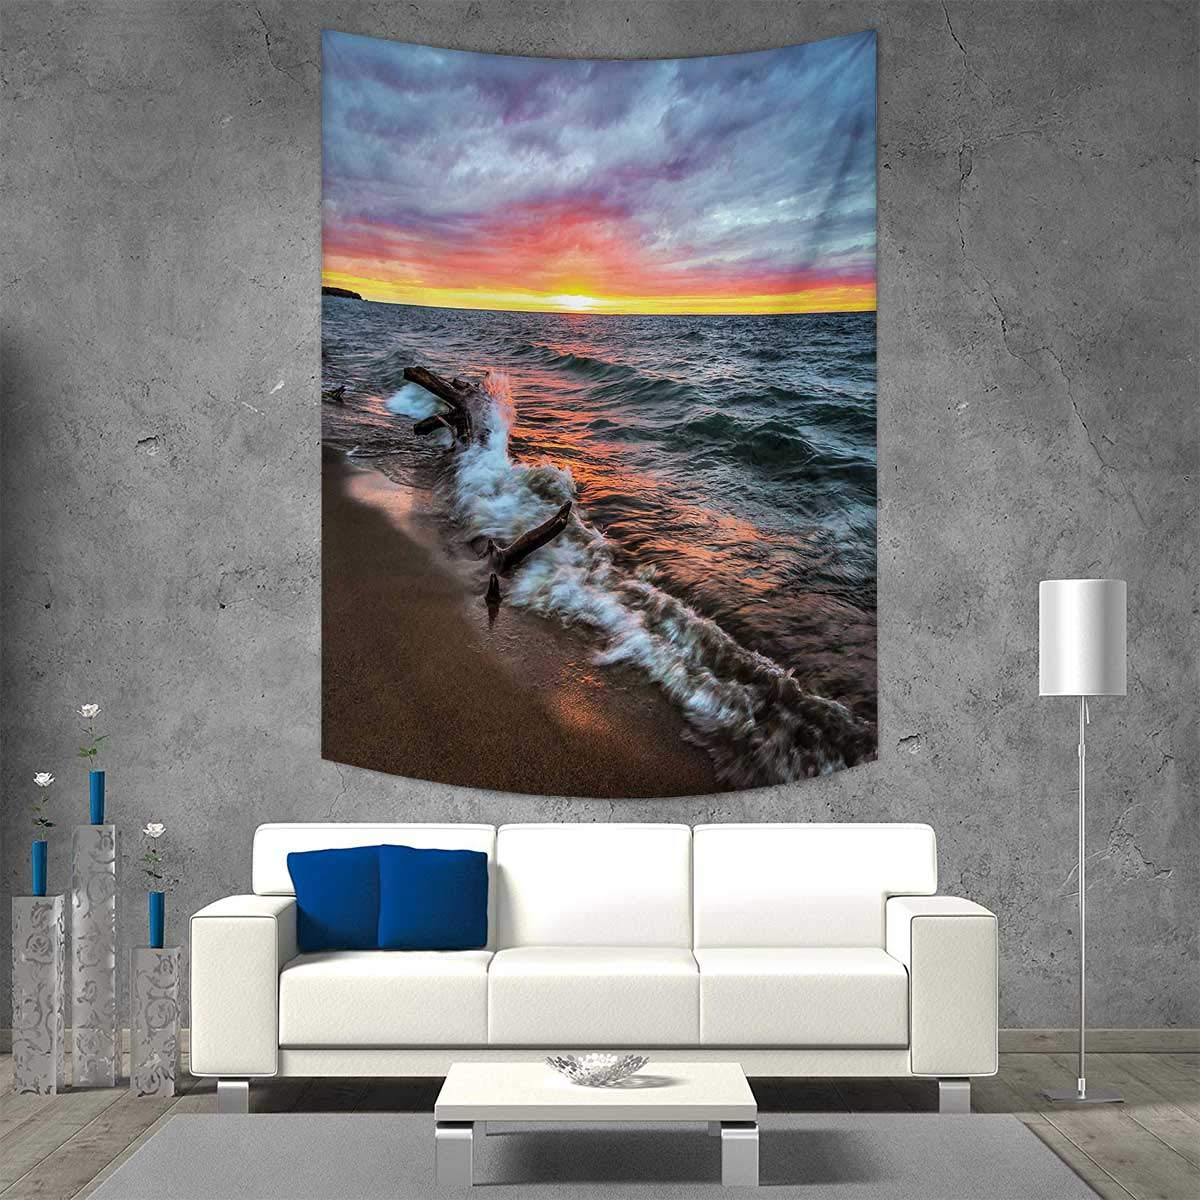 smallbeefly Driftwood Beach Throw Blanket Driftwood on The Shores of The Lake Set Against The Sunset Horizon Image Vertical Version Tapestry 40W x 60L INCH Blue Grey Orange